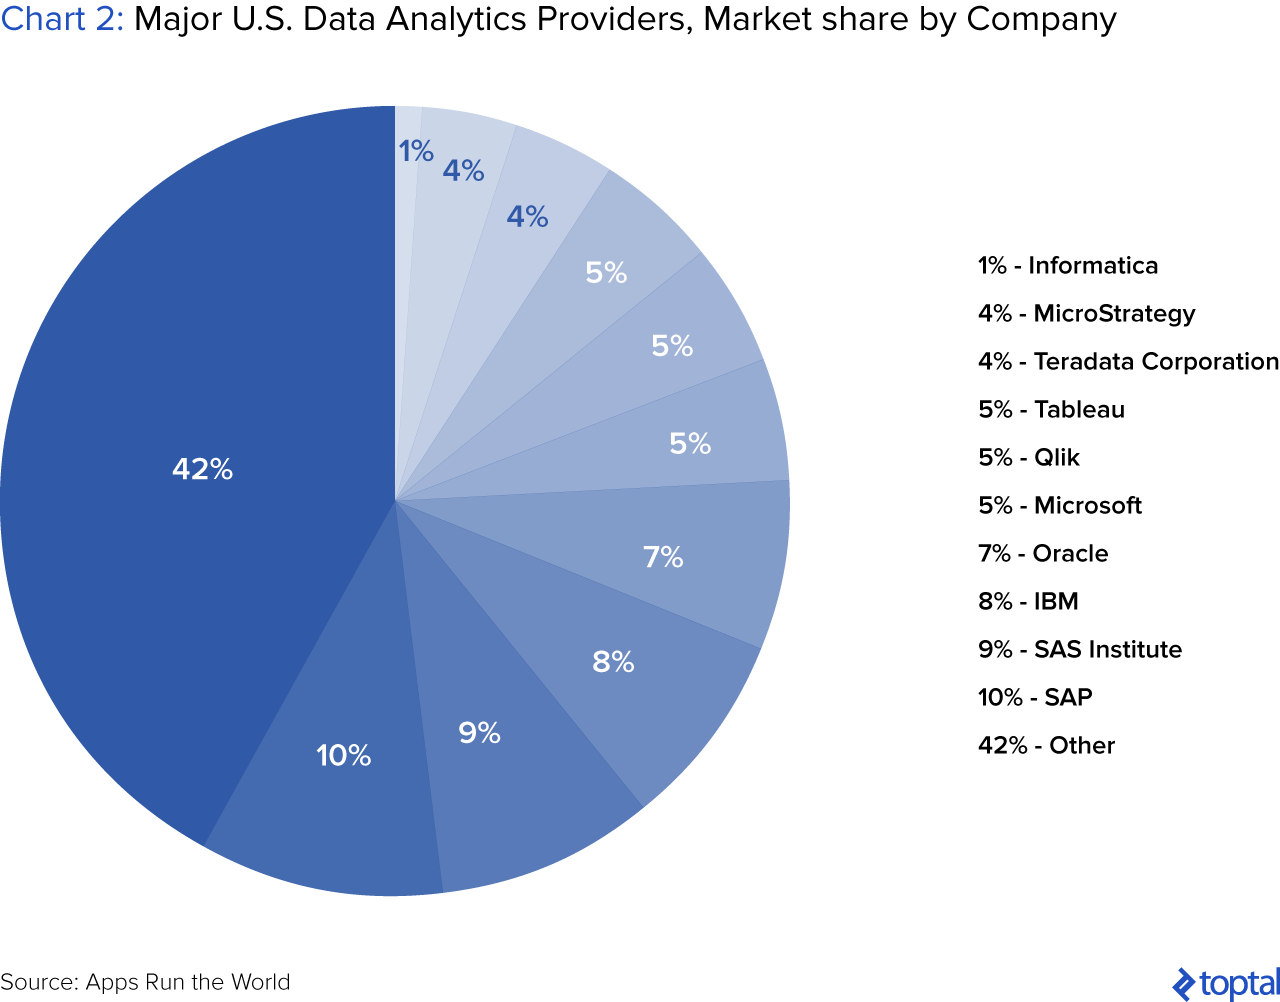 Chart 2: Major US Data Analytics Providers, Market Share by Company